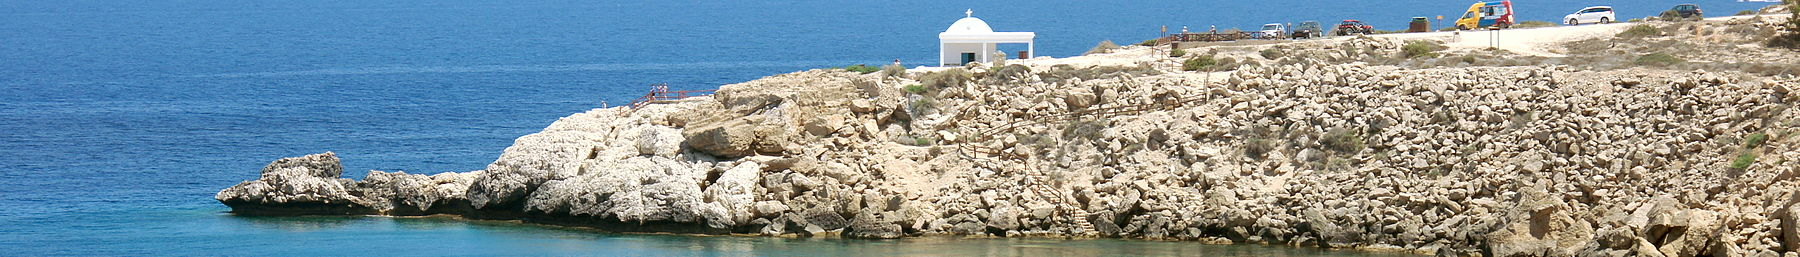 Cape Greco, Cyprus banner.jpg